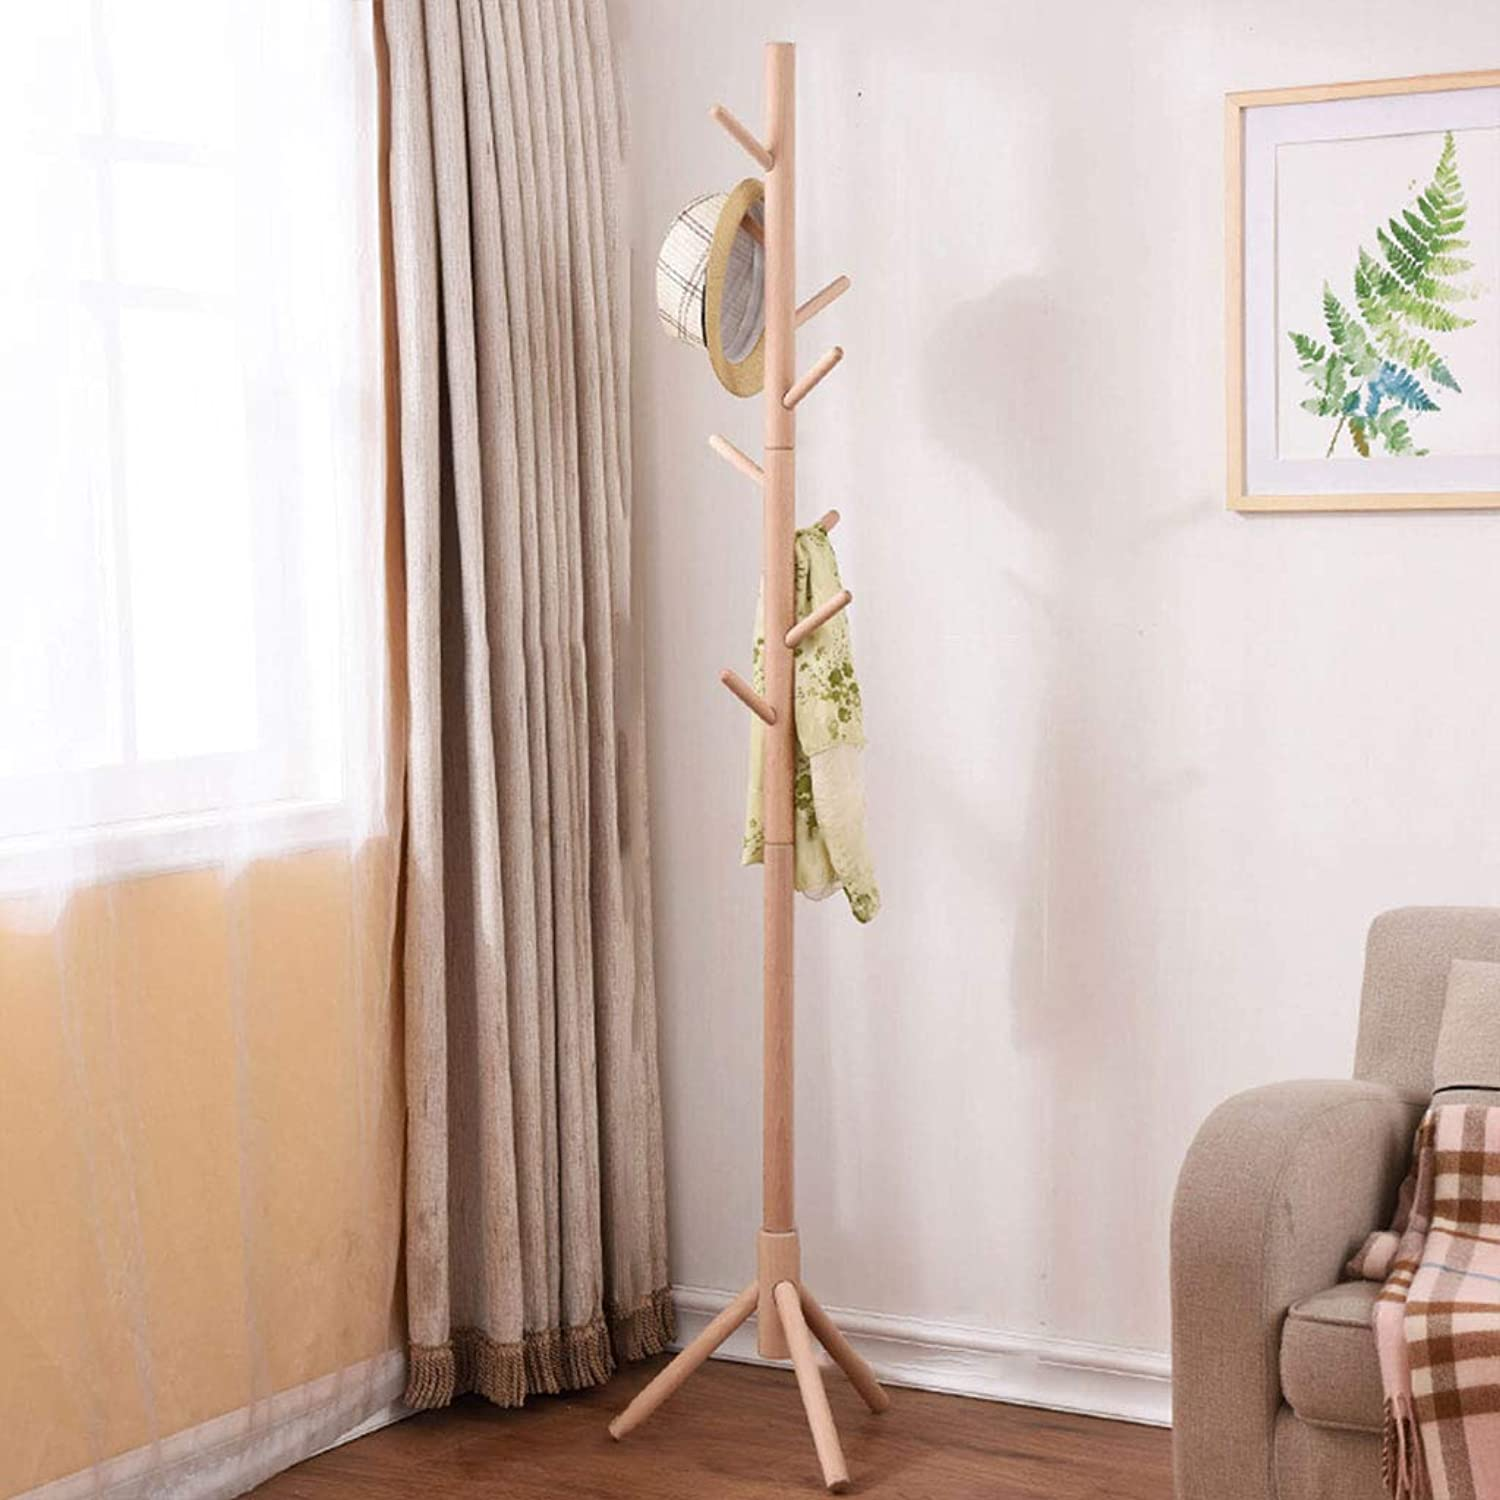 Wooden Coat Rack Floor Bedroom Simple Clothes Rack Living Room Porch Single Pole Hanger (8 Hooks) (color   A)